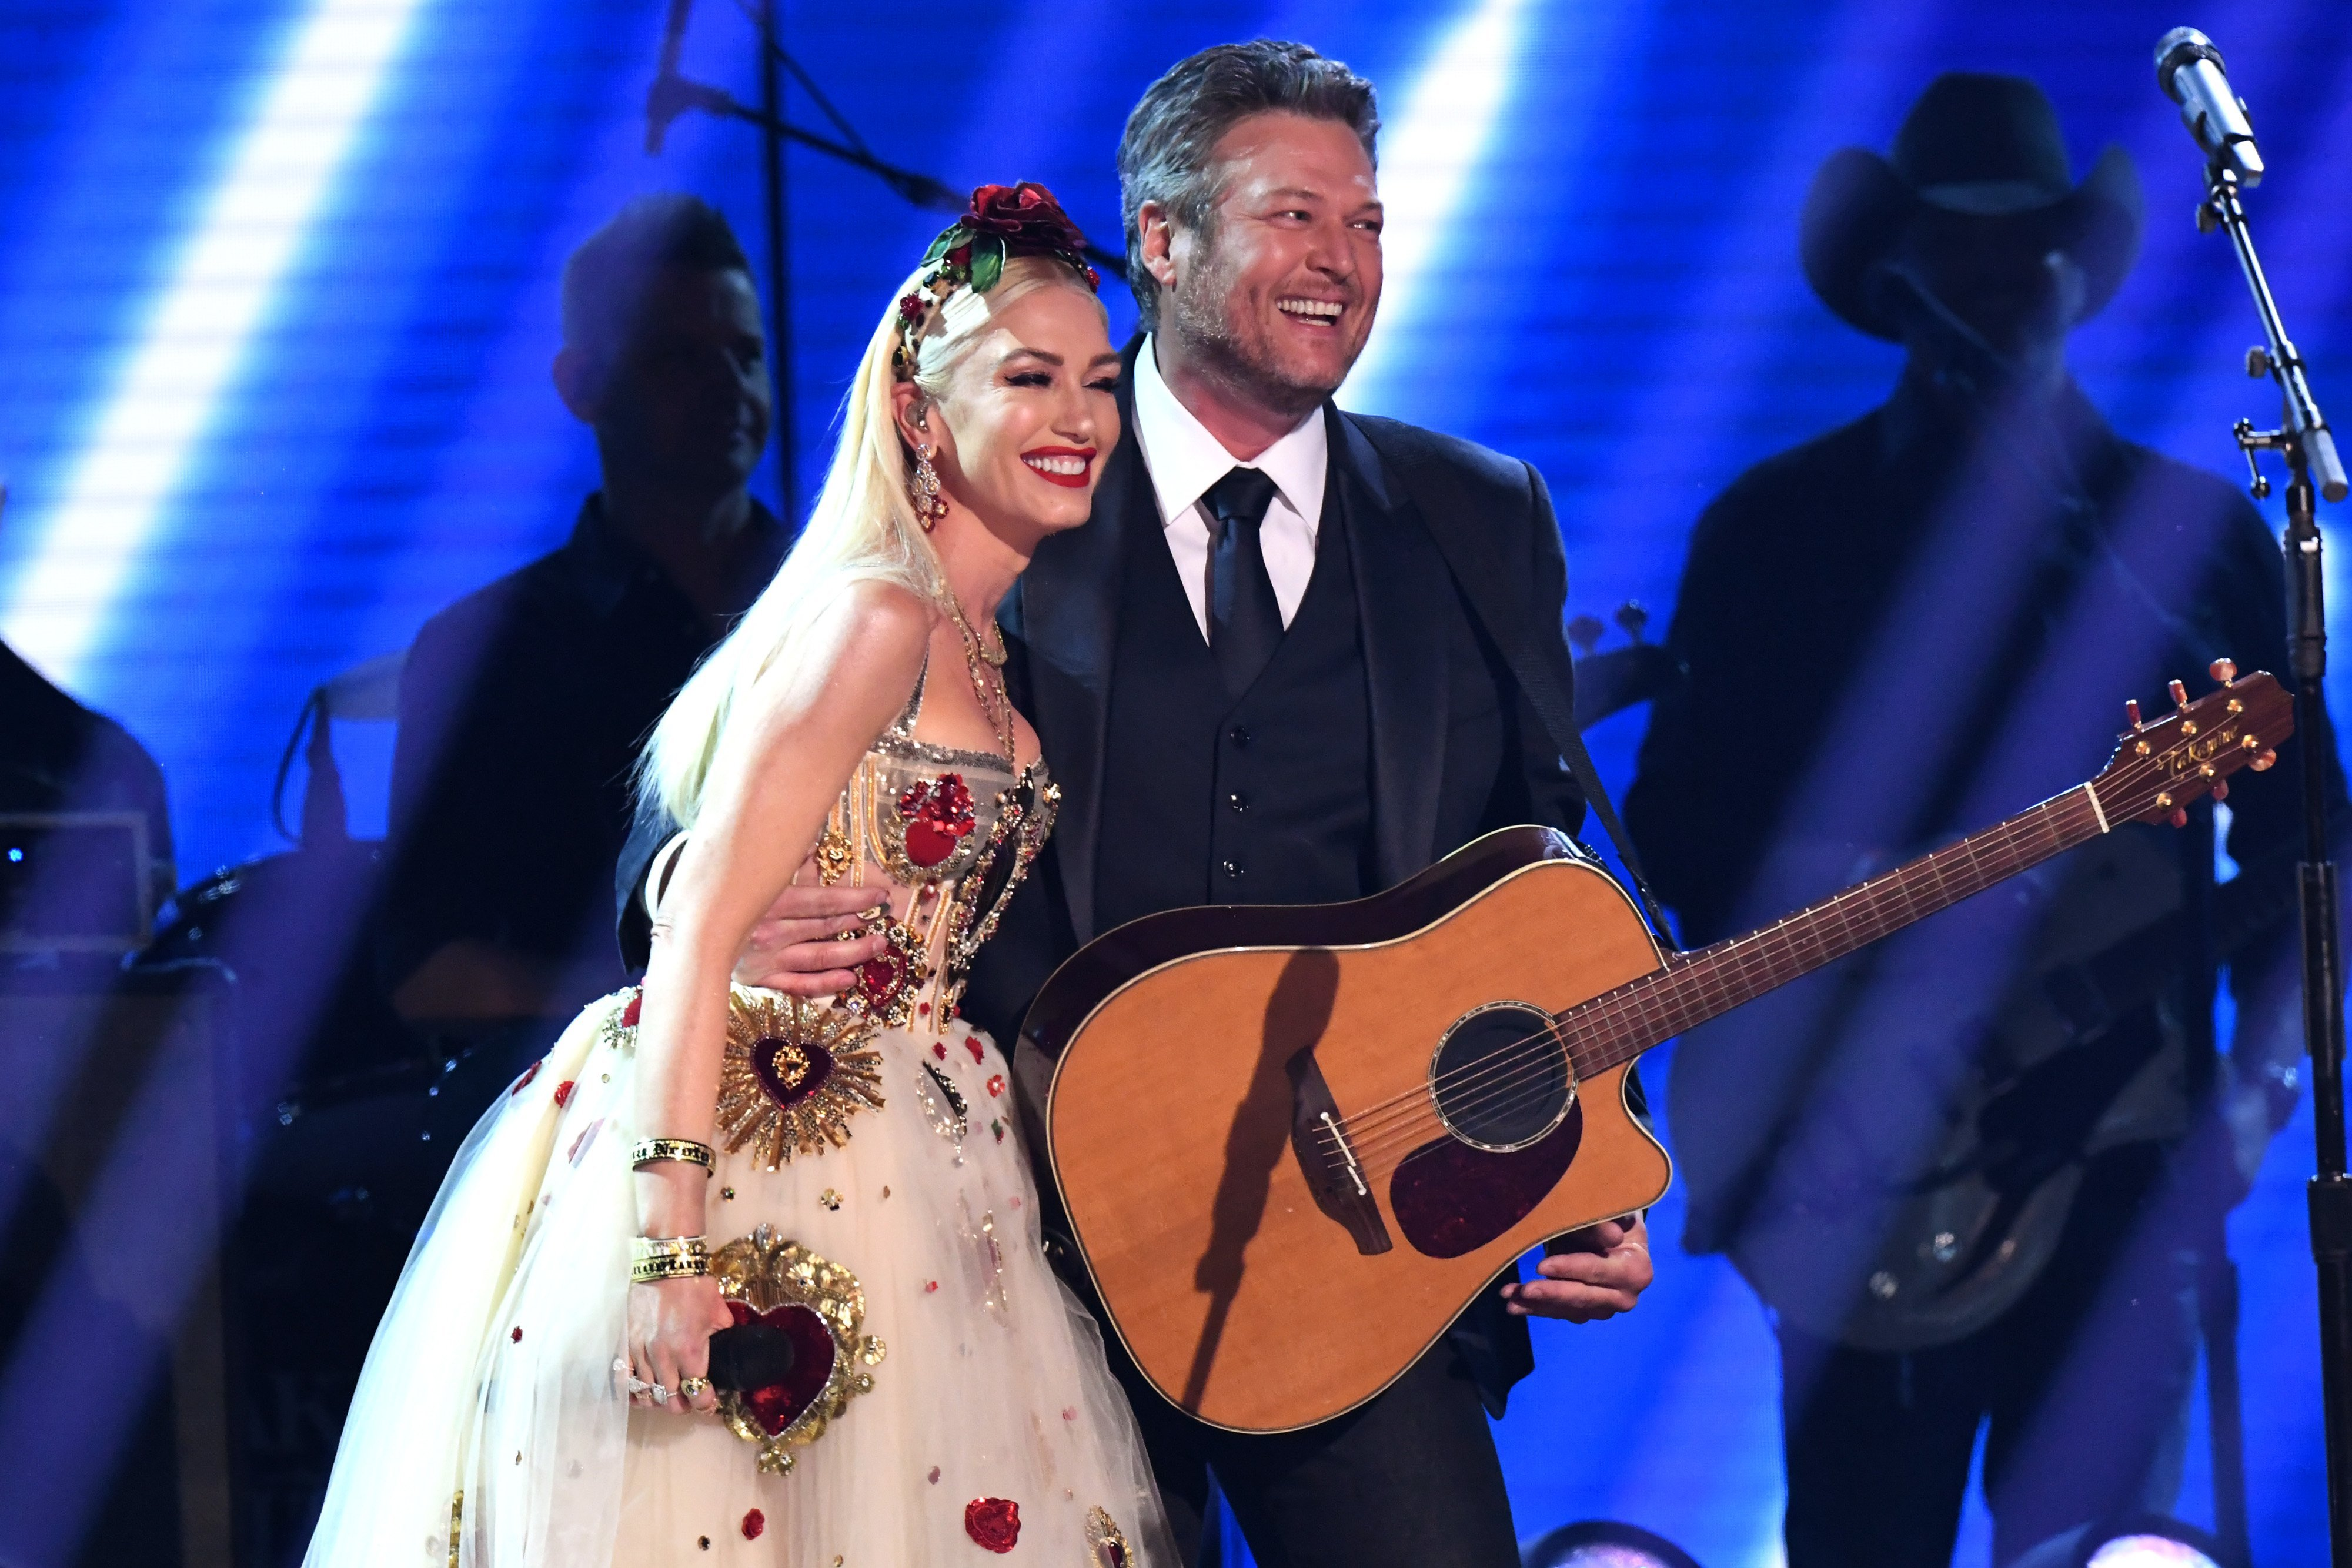 Gwen Stefani and Blake Shelton onstage during the 62nd Annual GRAMMY Awards at Staples Center on January 26, 2020, in Los Angeles, California. | Source: Getty Images.